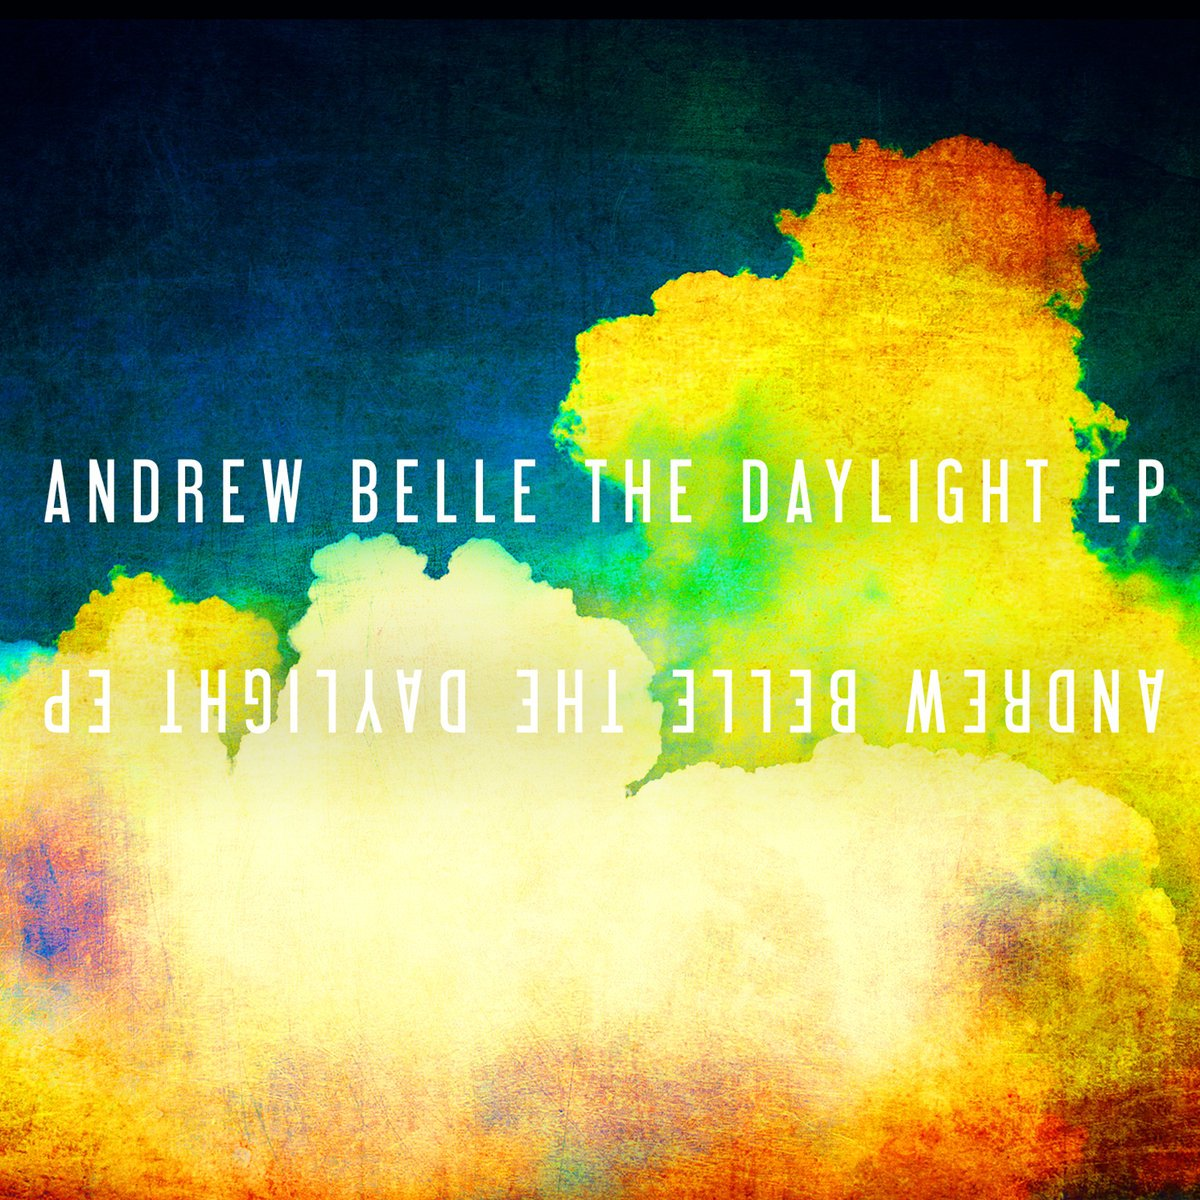 The Daylight EP - CD